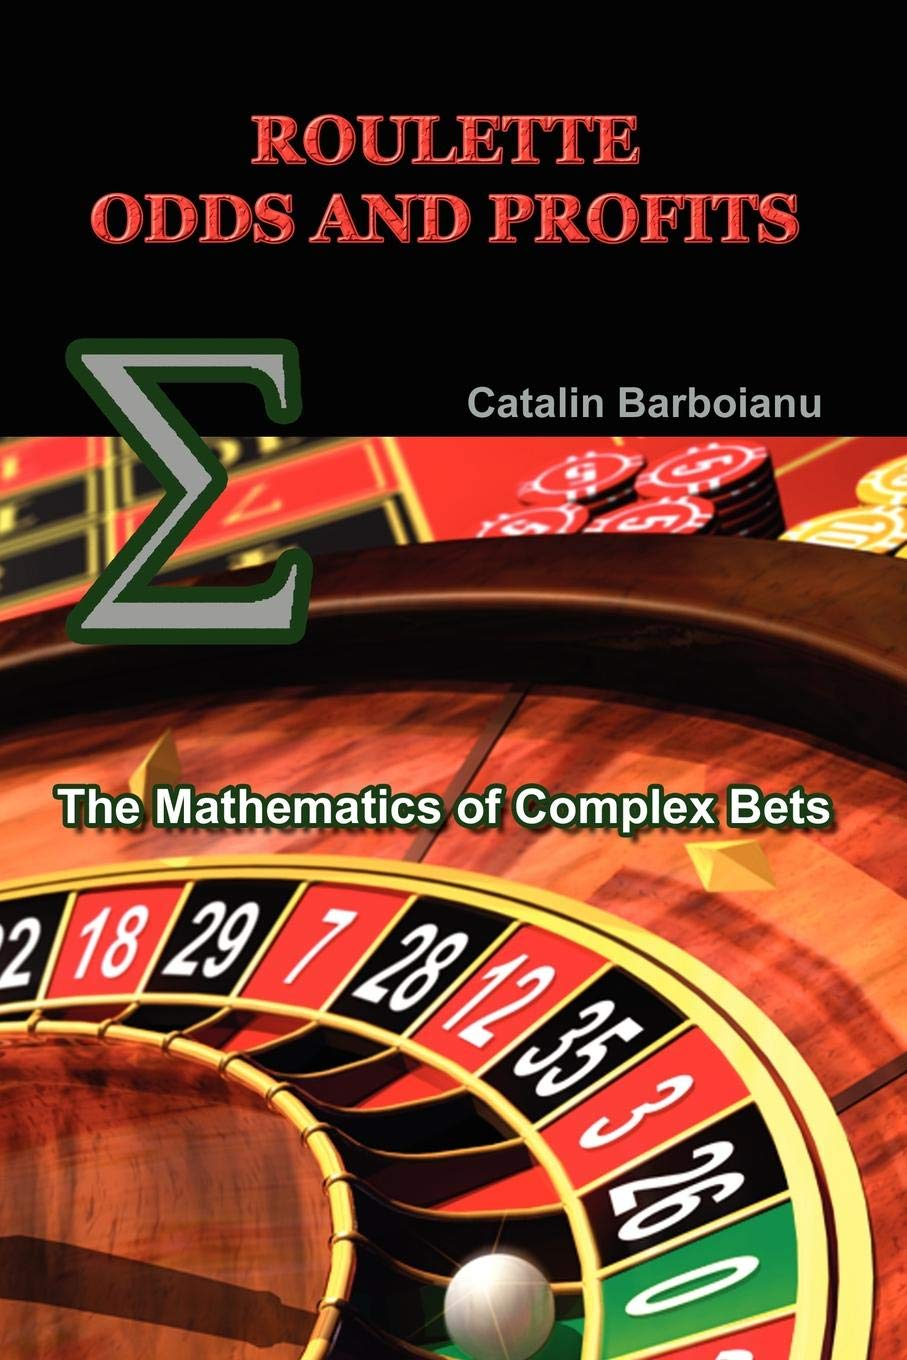 Roulette Odds and Profits: The Mathematics of Complex Bets: Amazon ...